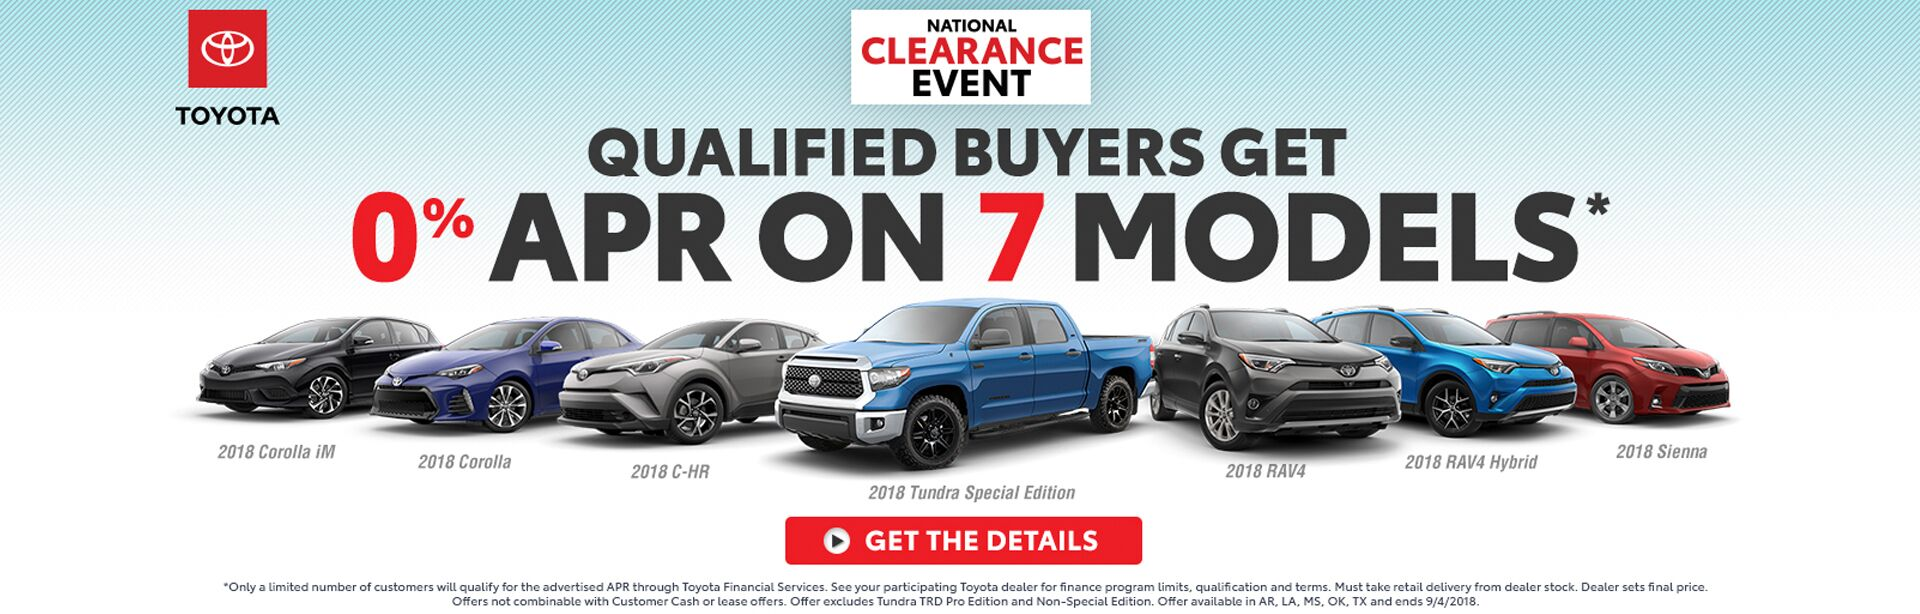 0% APR on 7 Models